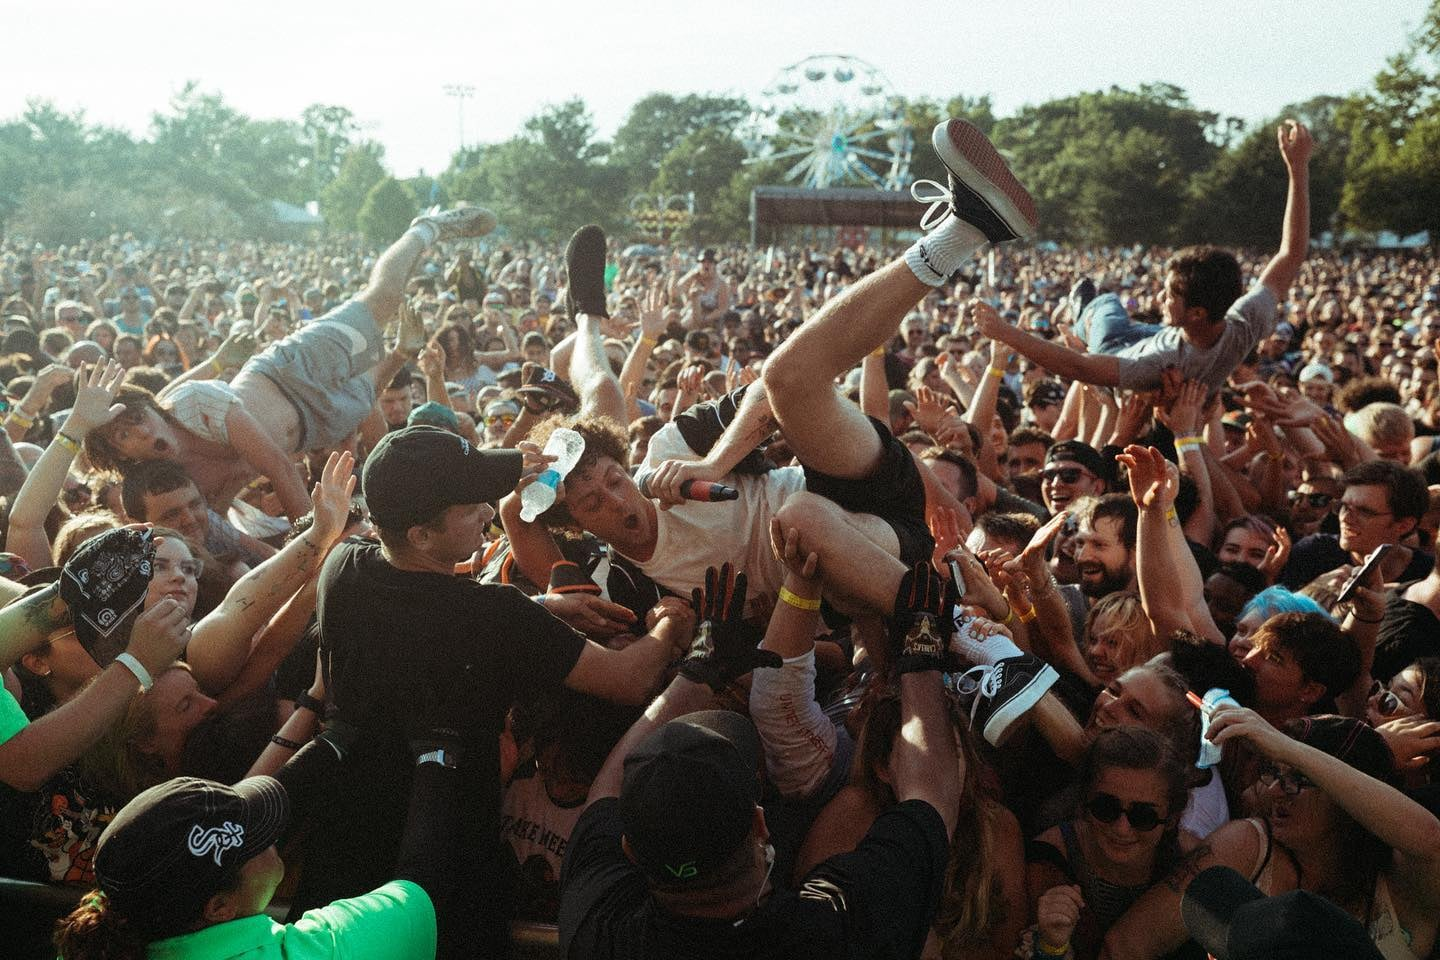 Image of the crowd surfers at Fiddler's Green Amphitheatre in Greenwood, Colorado